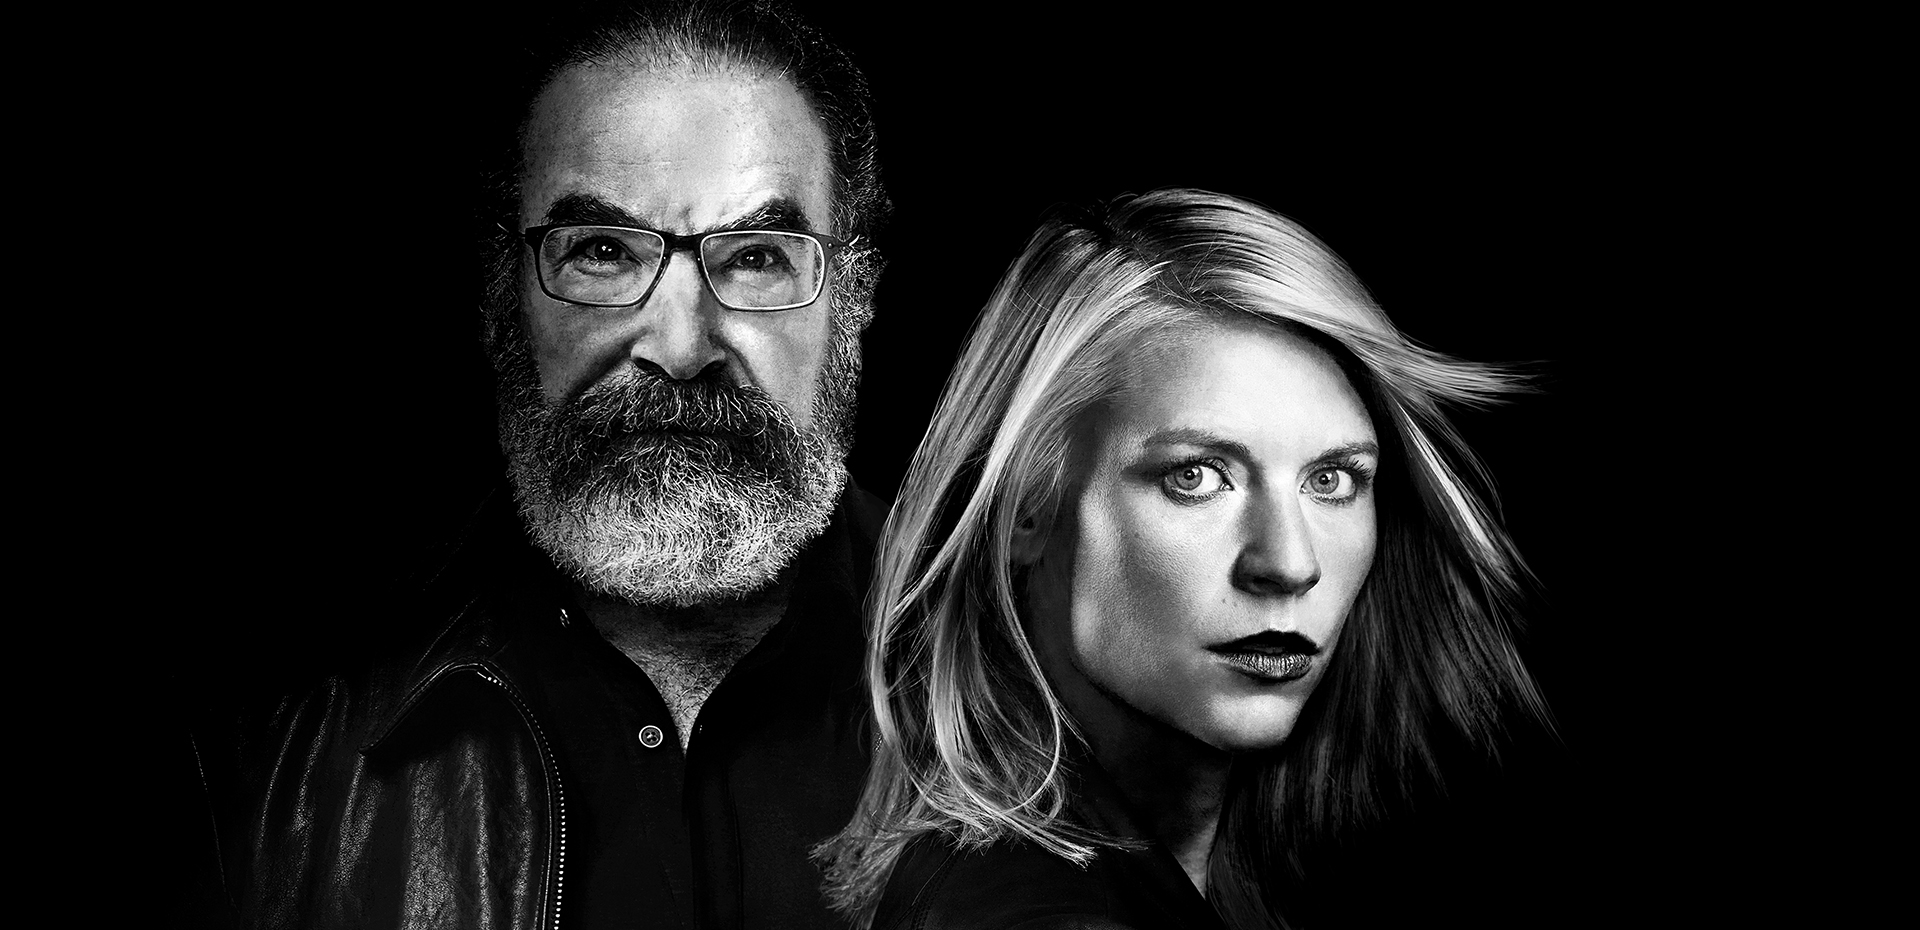 This Just In: SHOWTIME® Debuts Trailer and Official Poster for the Final Season of HOMELAND